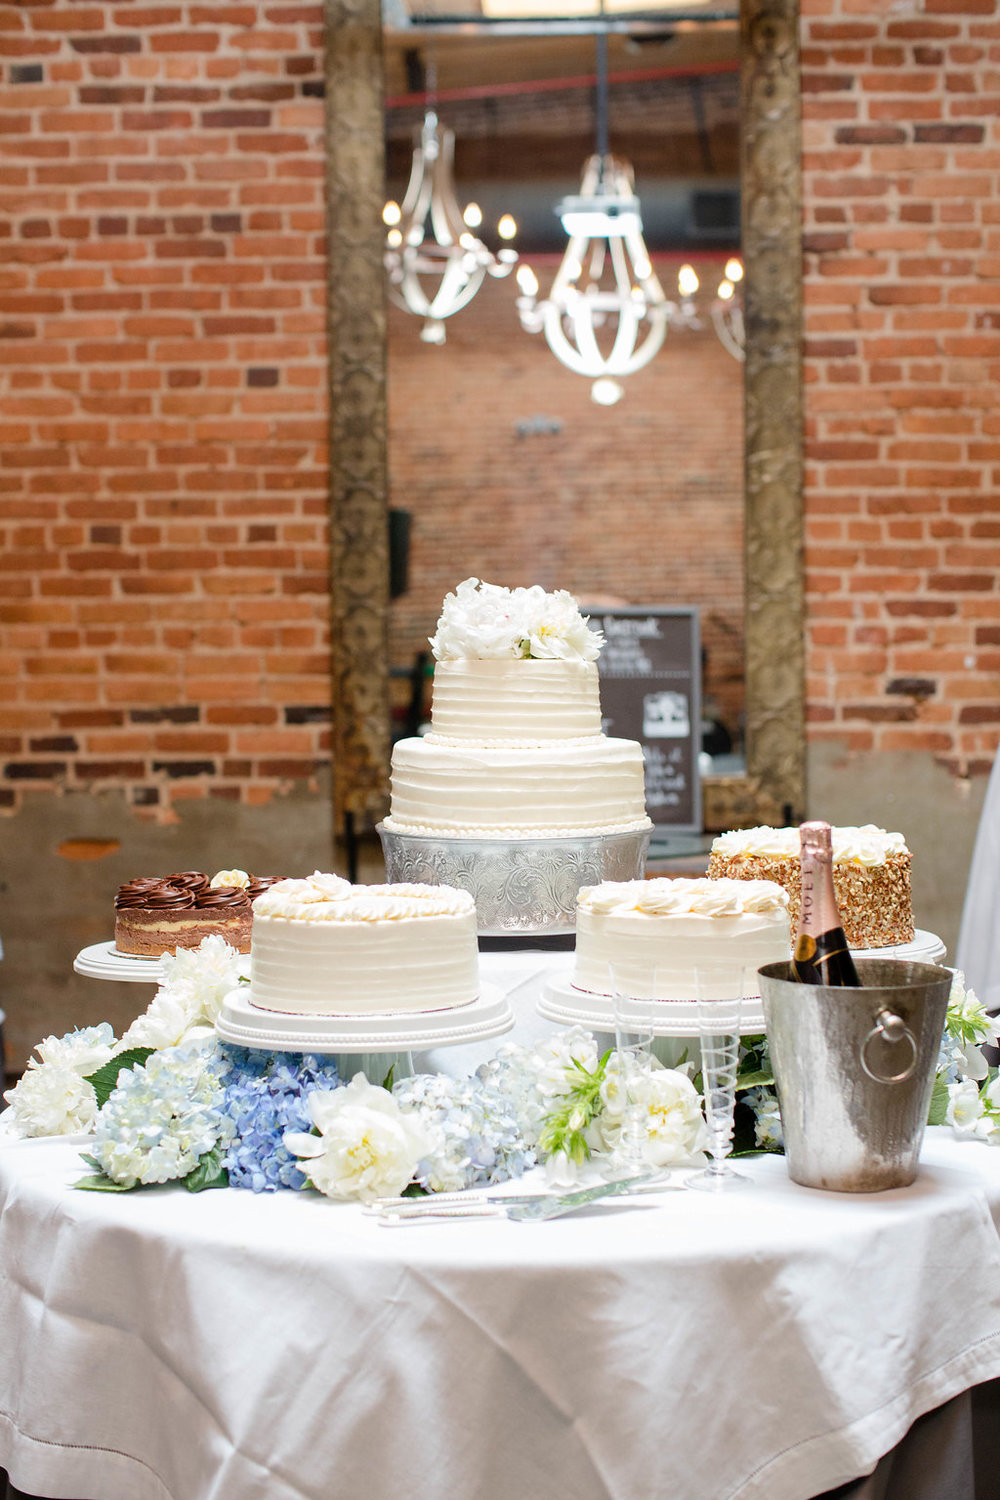 Summer's Temptations wedding cakes